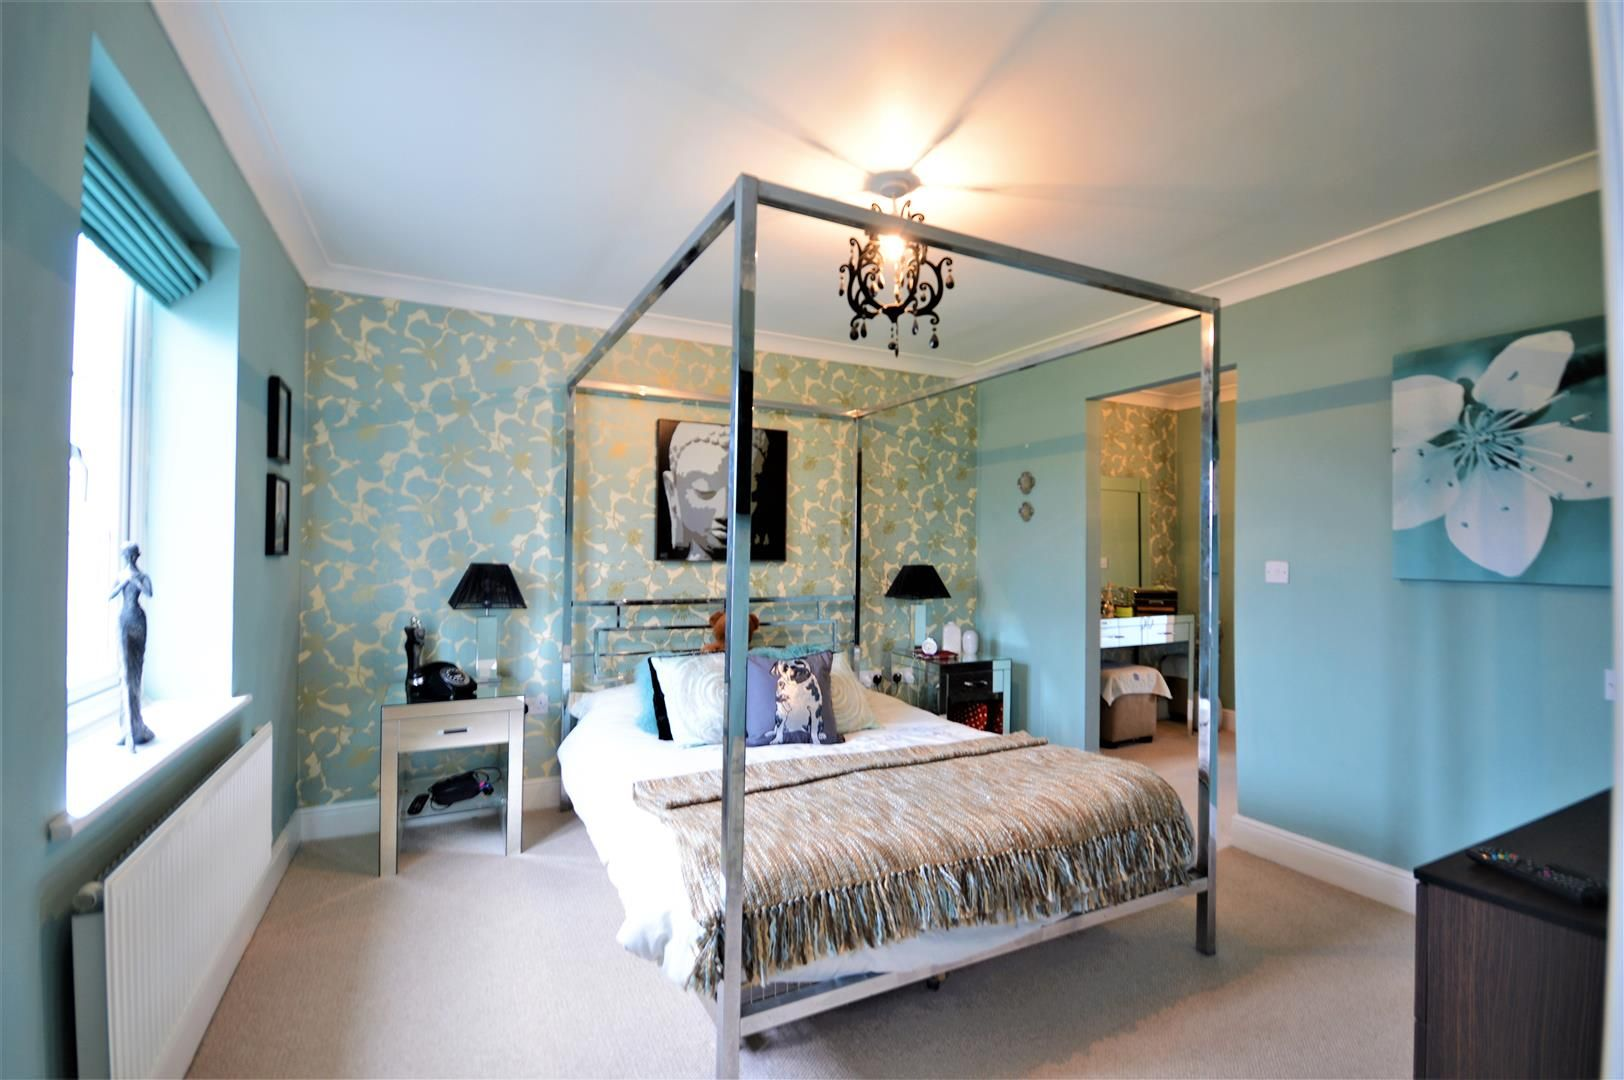 5 bed detached for sale in Kingstone  - Property Image 7